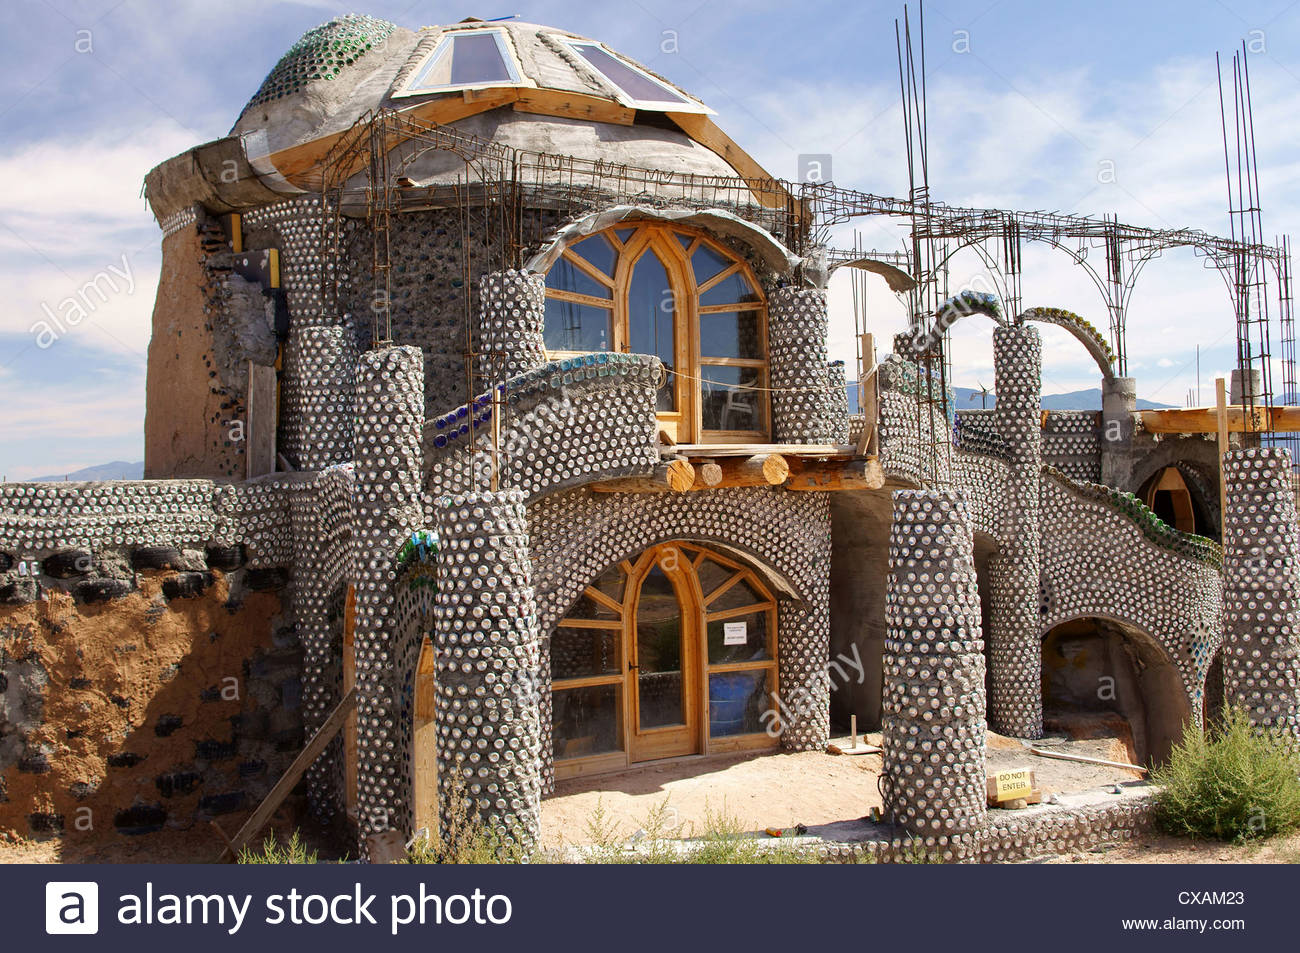 Earthship Stock Photos & Earthship Stock Images.